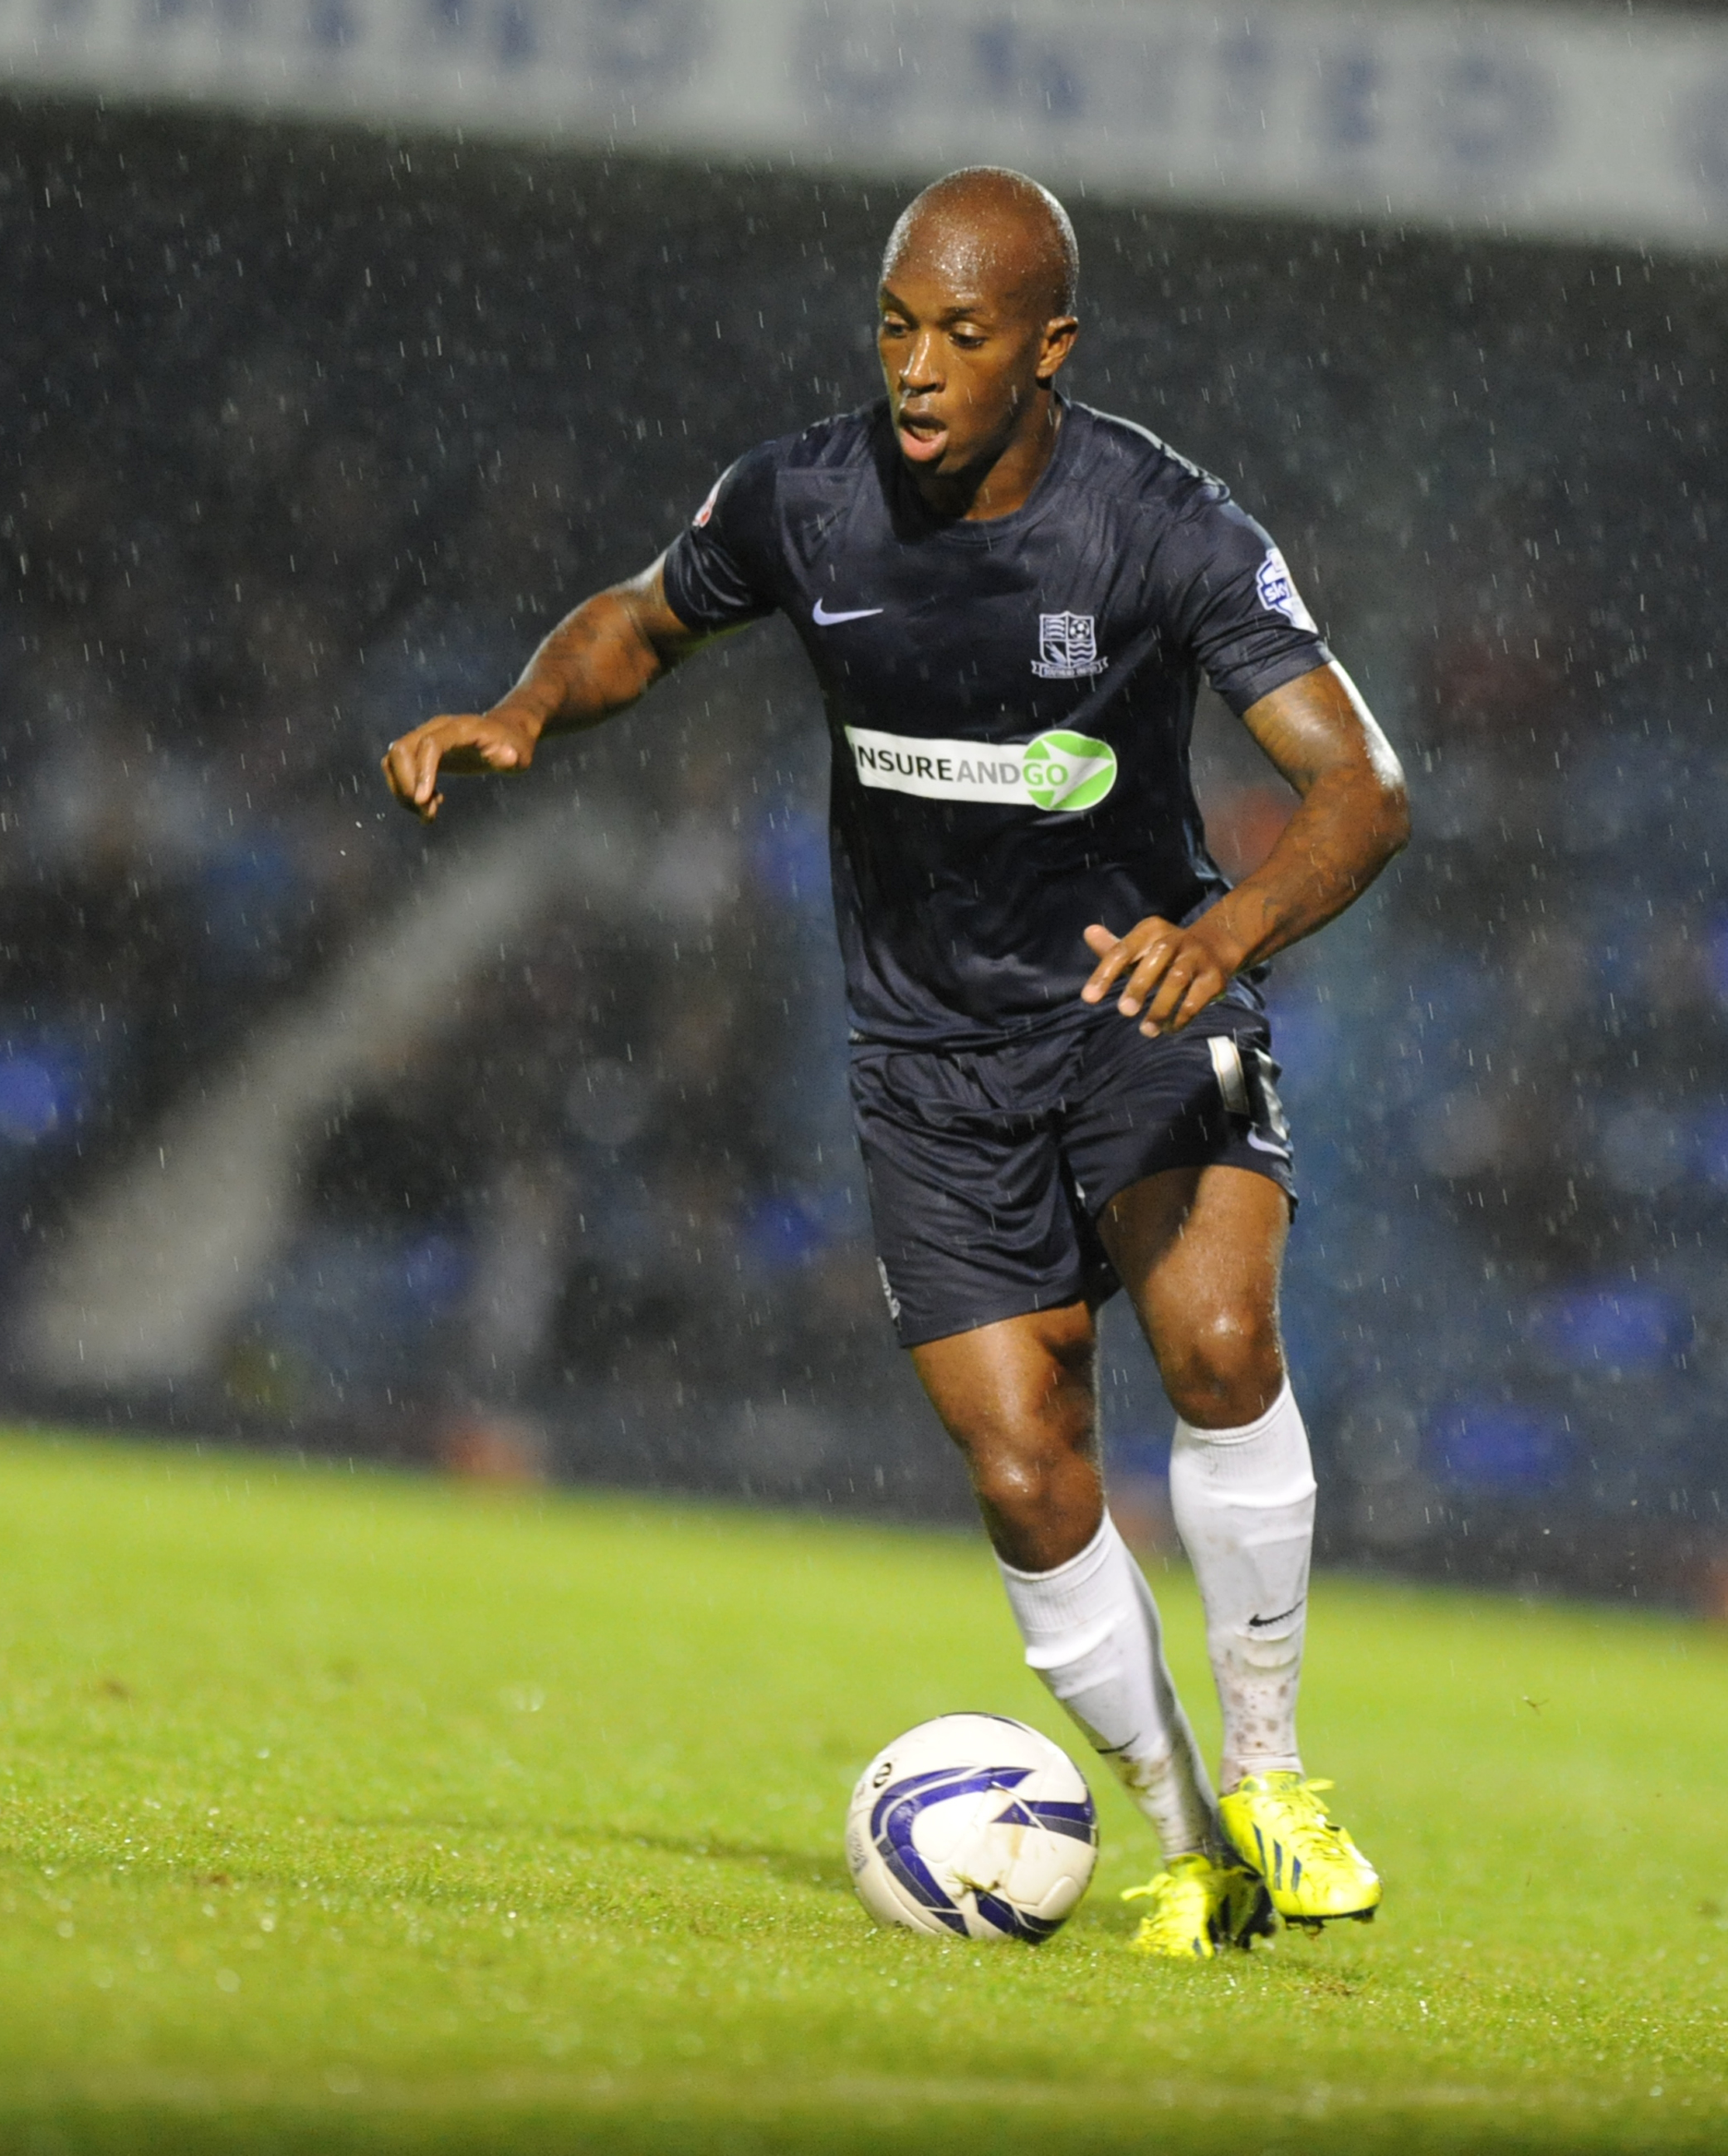 Anthony Straker - out to impress at York City this weekend